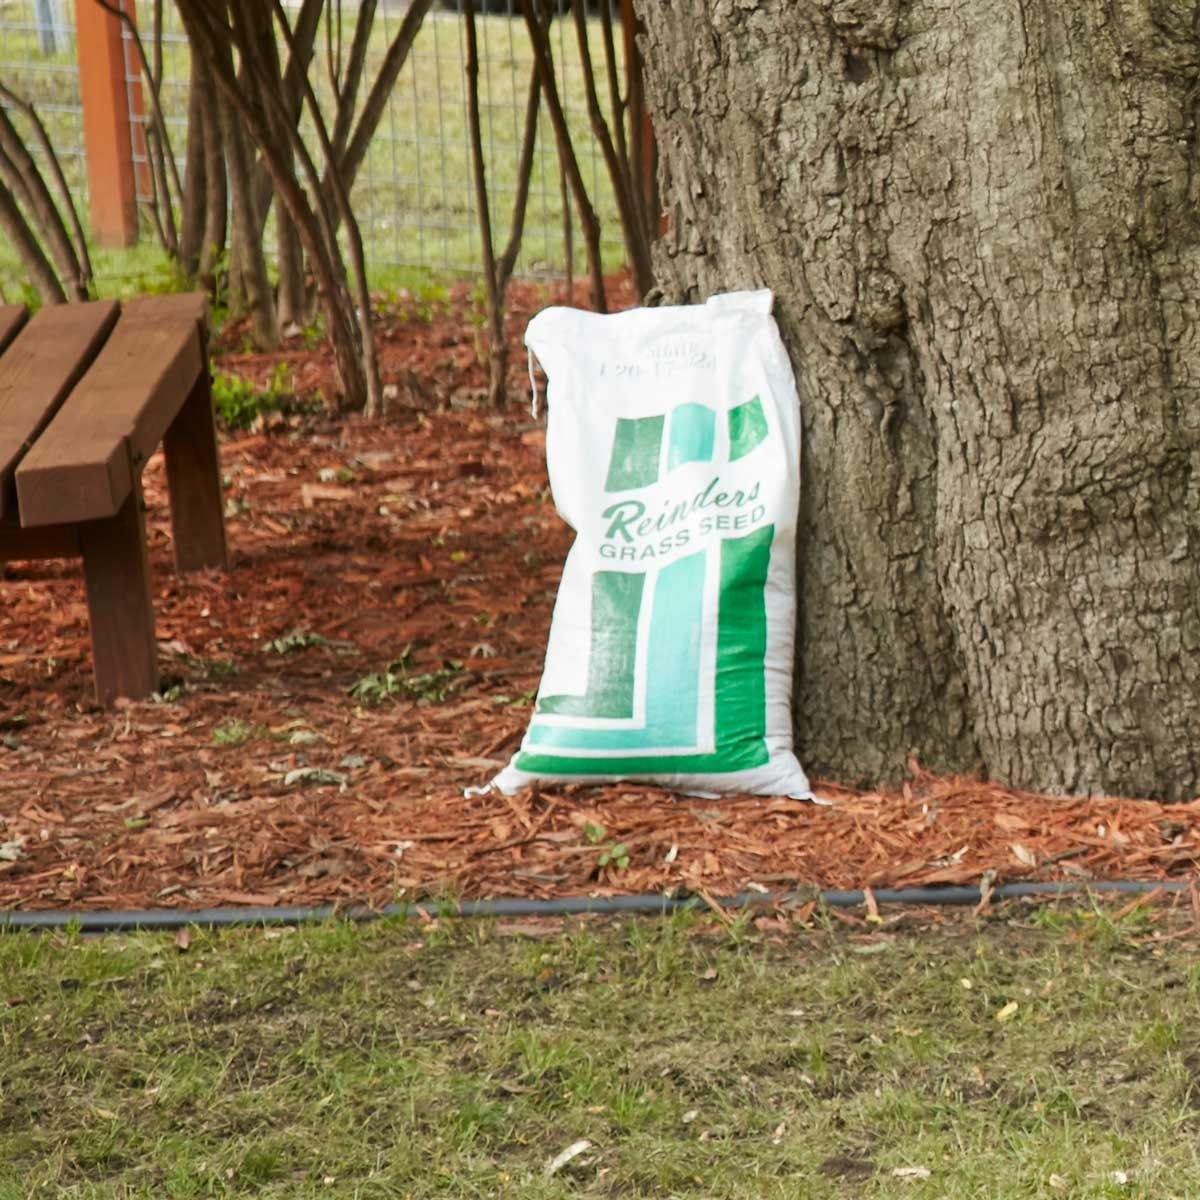 How To Buy Quality Lawn Seed Seeding lawn, Lawn care